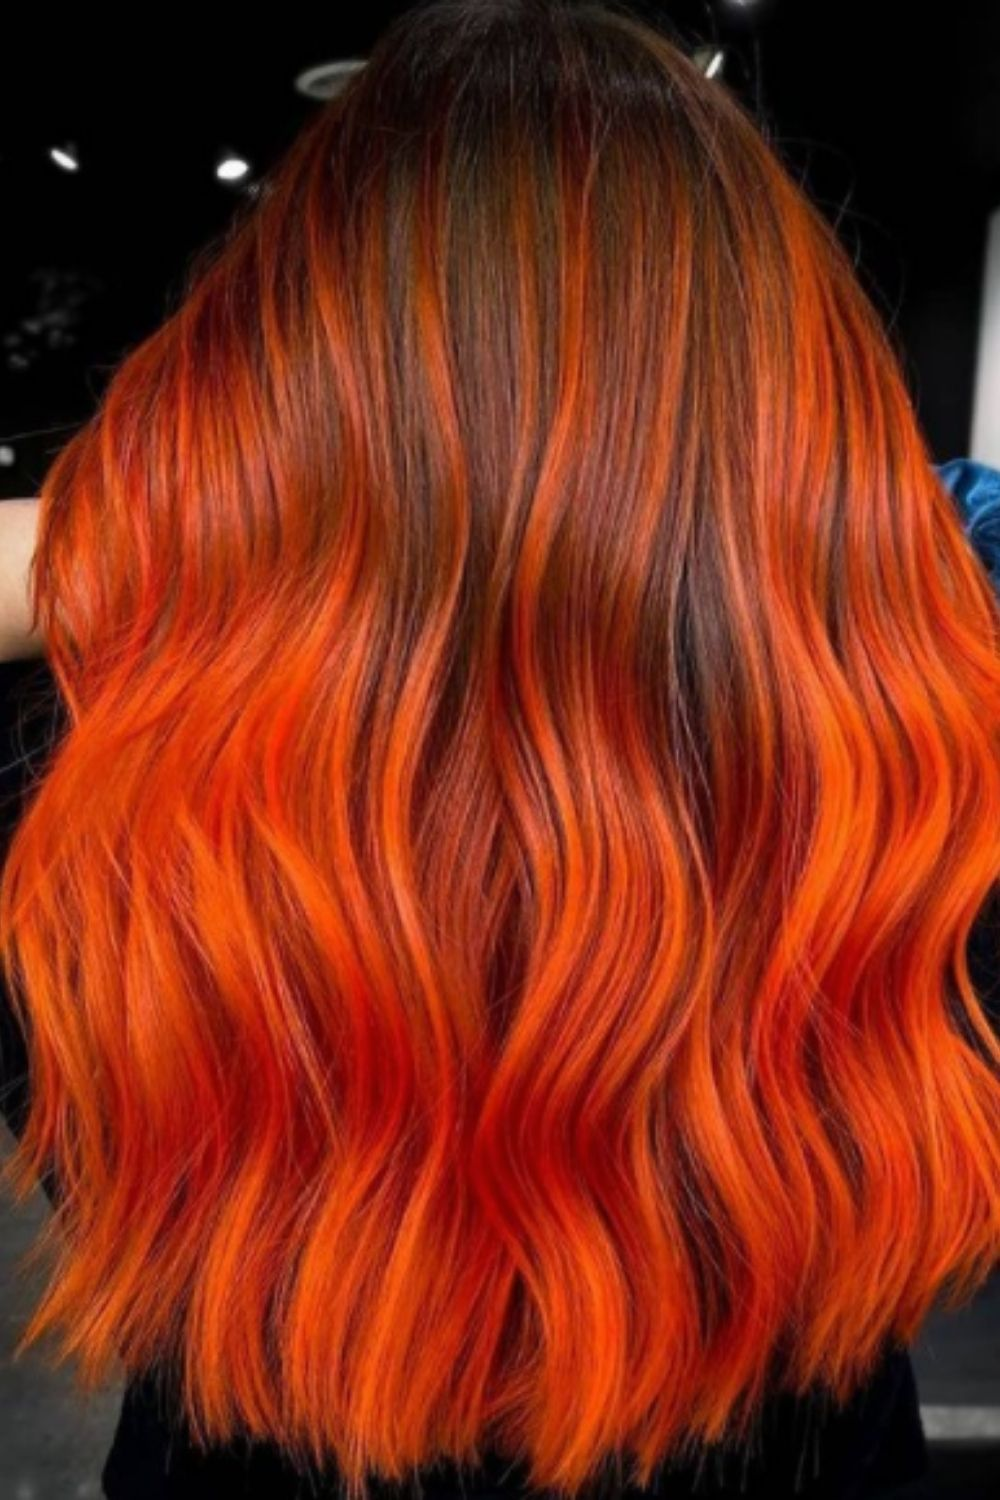 What is red highlight for fall hair color trends?